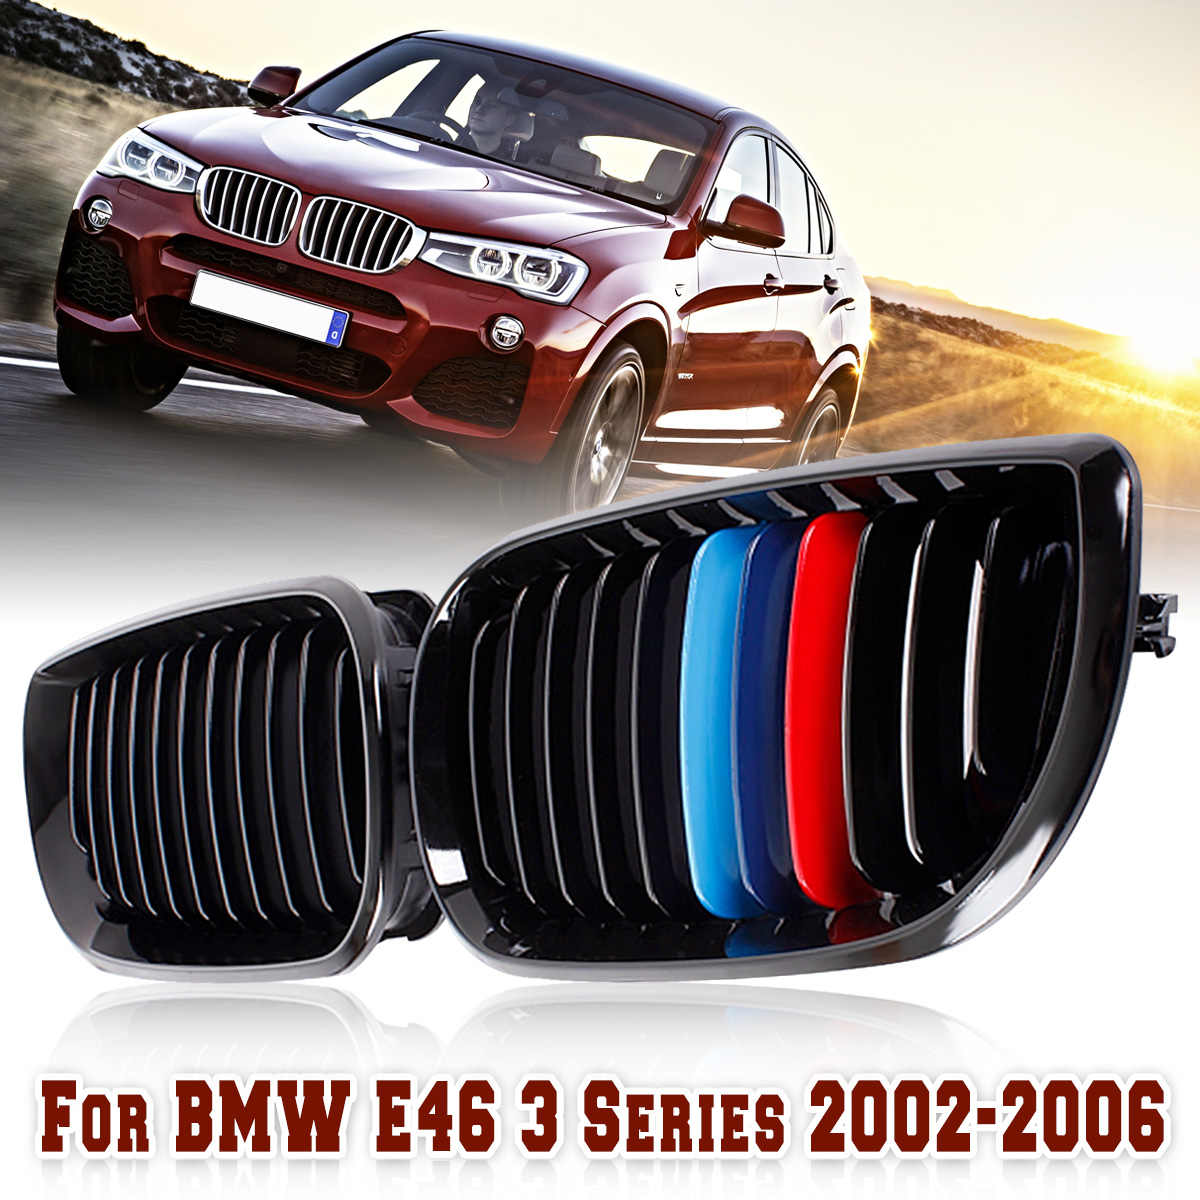 Why Are New Bmw Grilles So Big Youtube